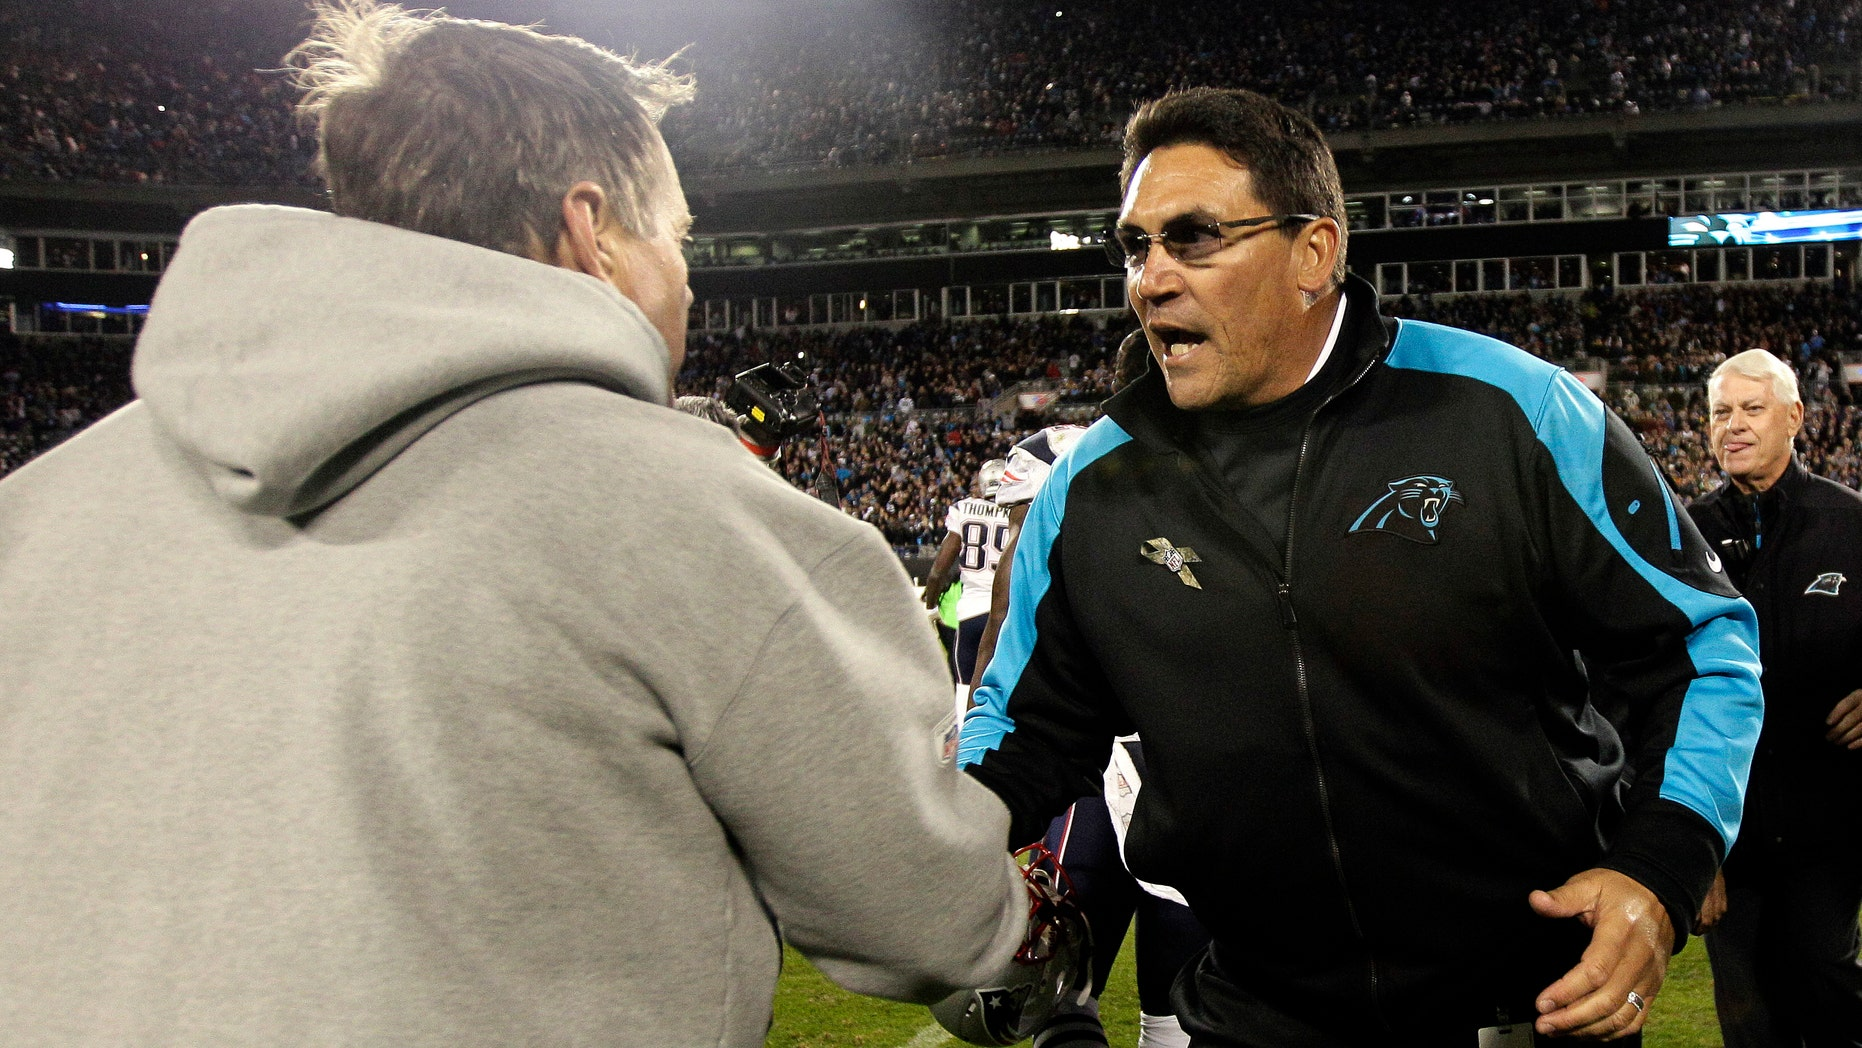 New England Patriots head coach Bill Belichick, left, and Carolina Panthers head coach Ron Rivera shake hands following an NFL football game in Charlotte, N.C., Monday, Nov. 18, 2013. Carolina won 24-20. (AP Photo/Gerry Broome)